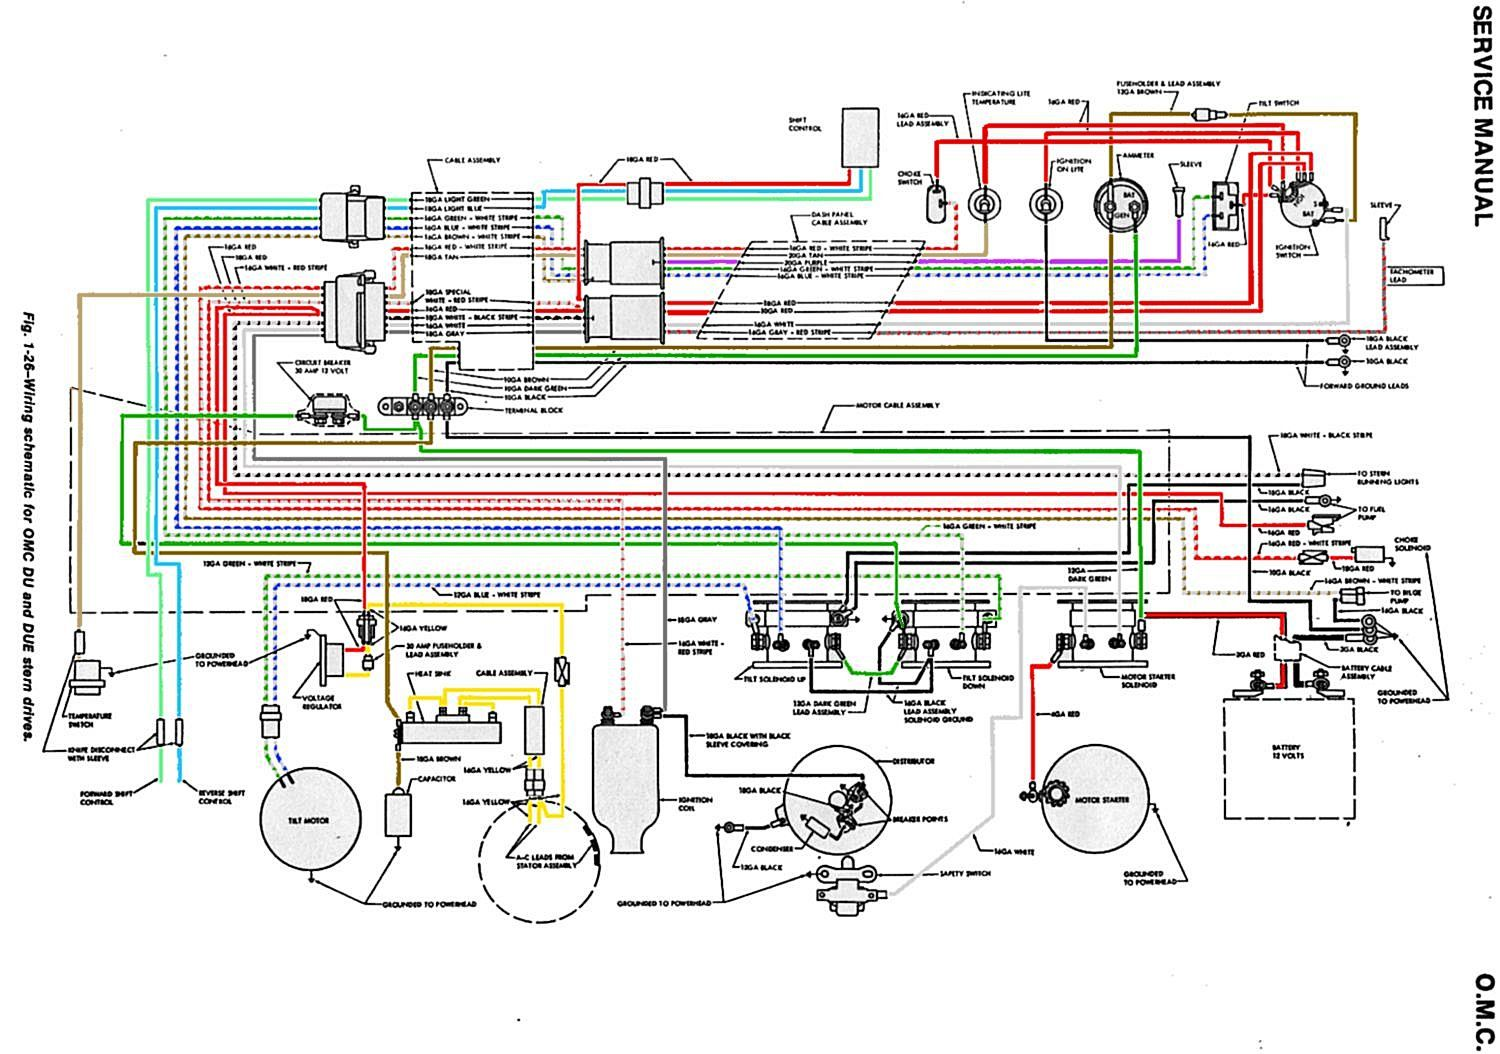 65 68_OMC_Wiring_Schematic omc wiring harness diagram johmson wiring harness \u2022 wiring  at creativeand.co